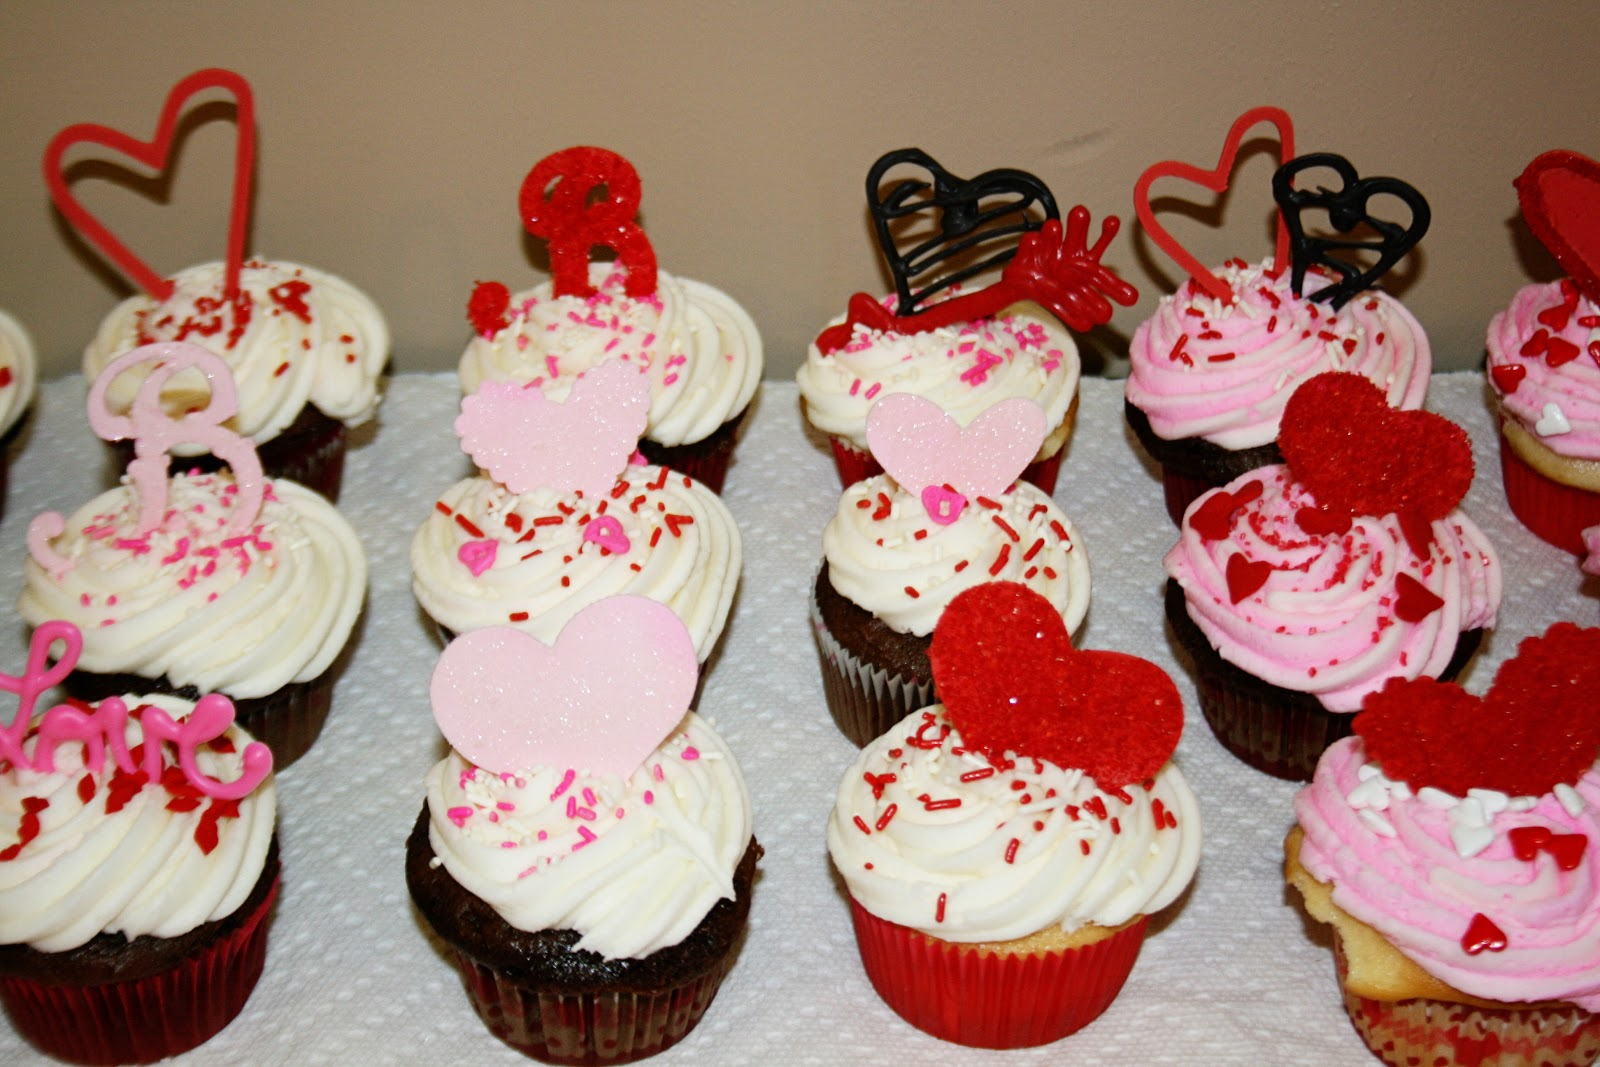 Cakes By Kim Pink and Red Wedding Cupcakes